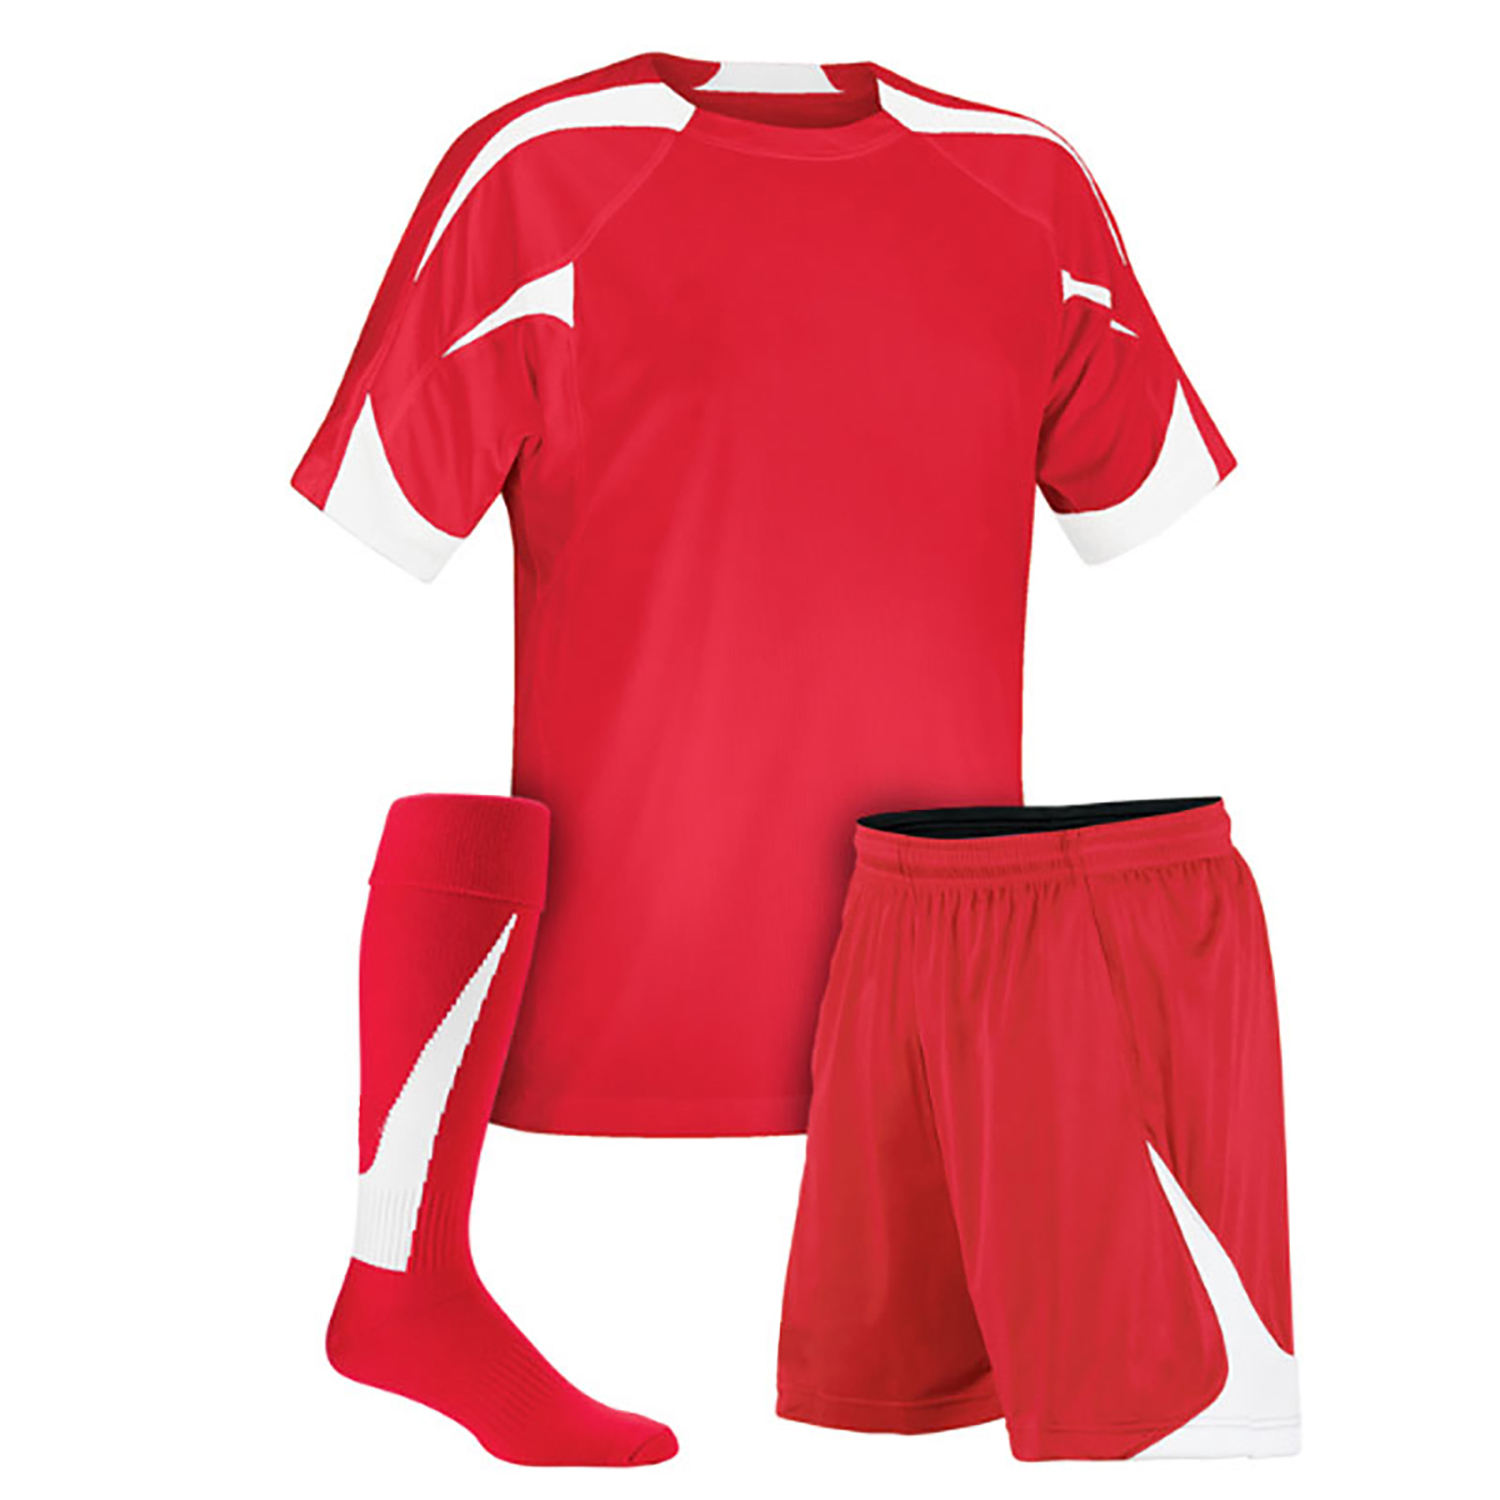 Custom Soccer Jerseys Men Football Uniforms Competition Training Suits Soccer Sets Soccer Uniforms Top Quality.